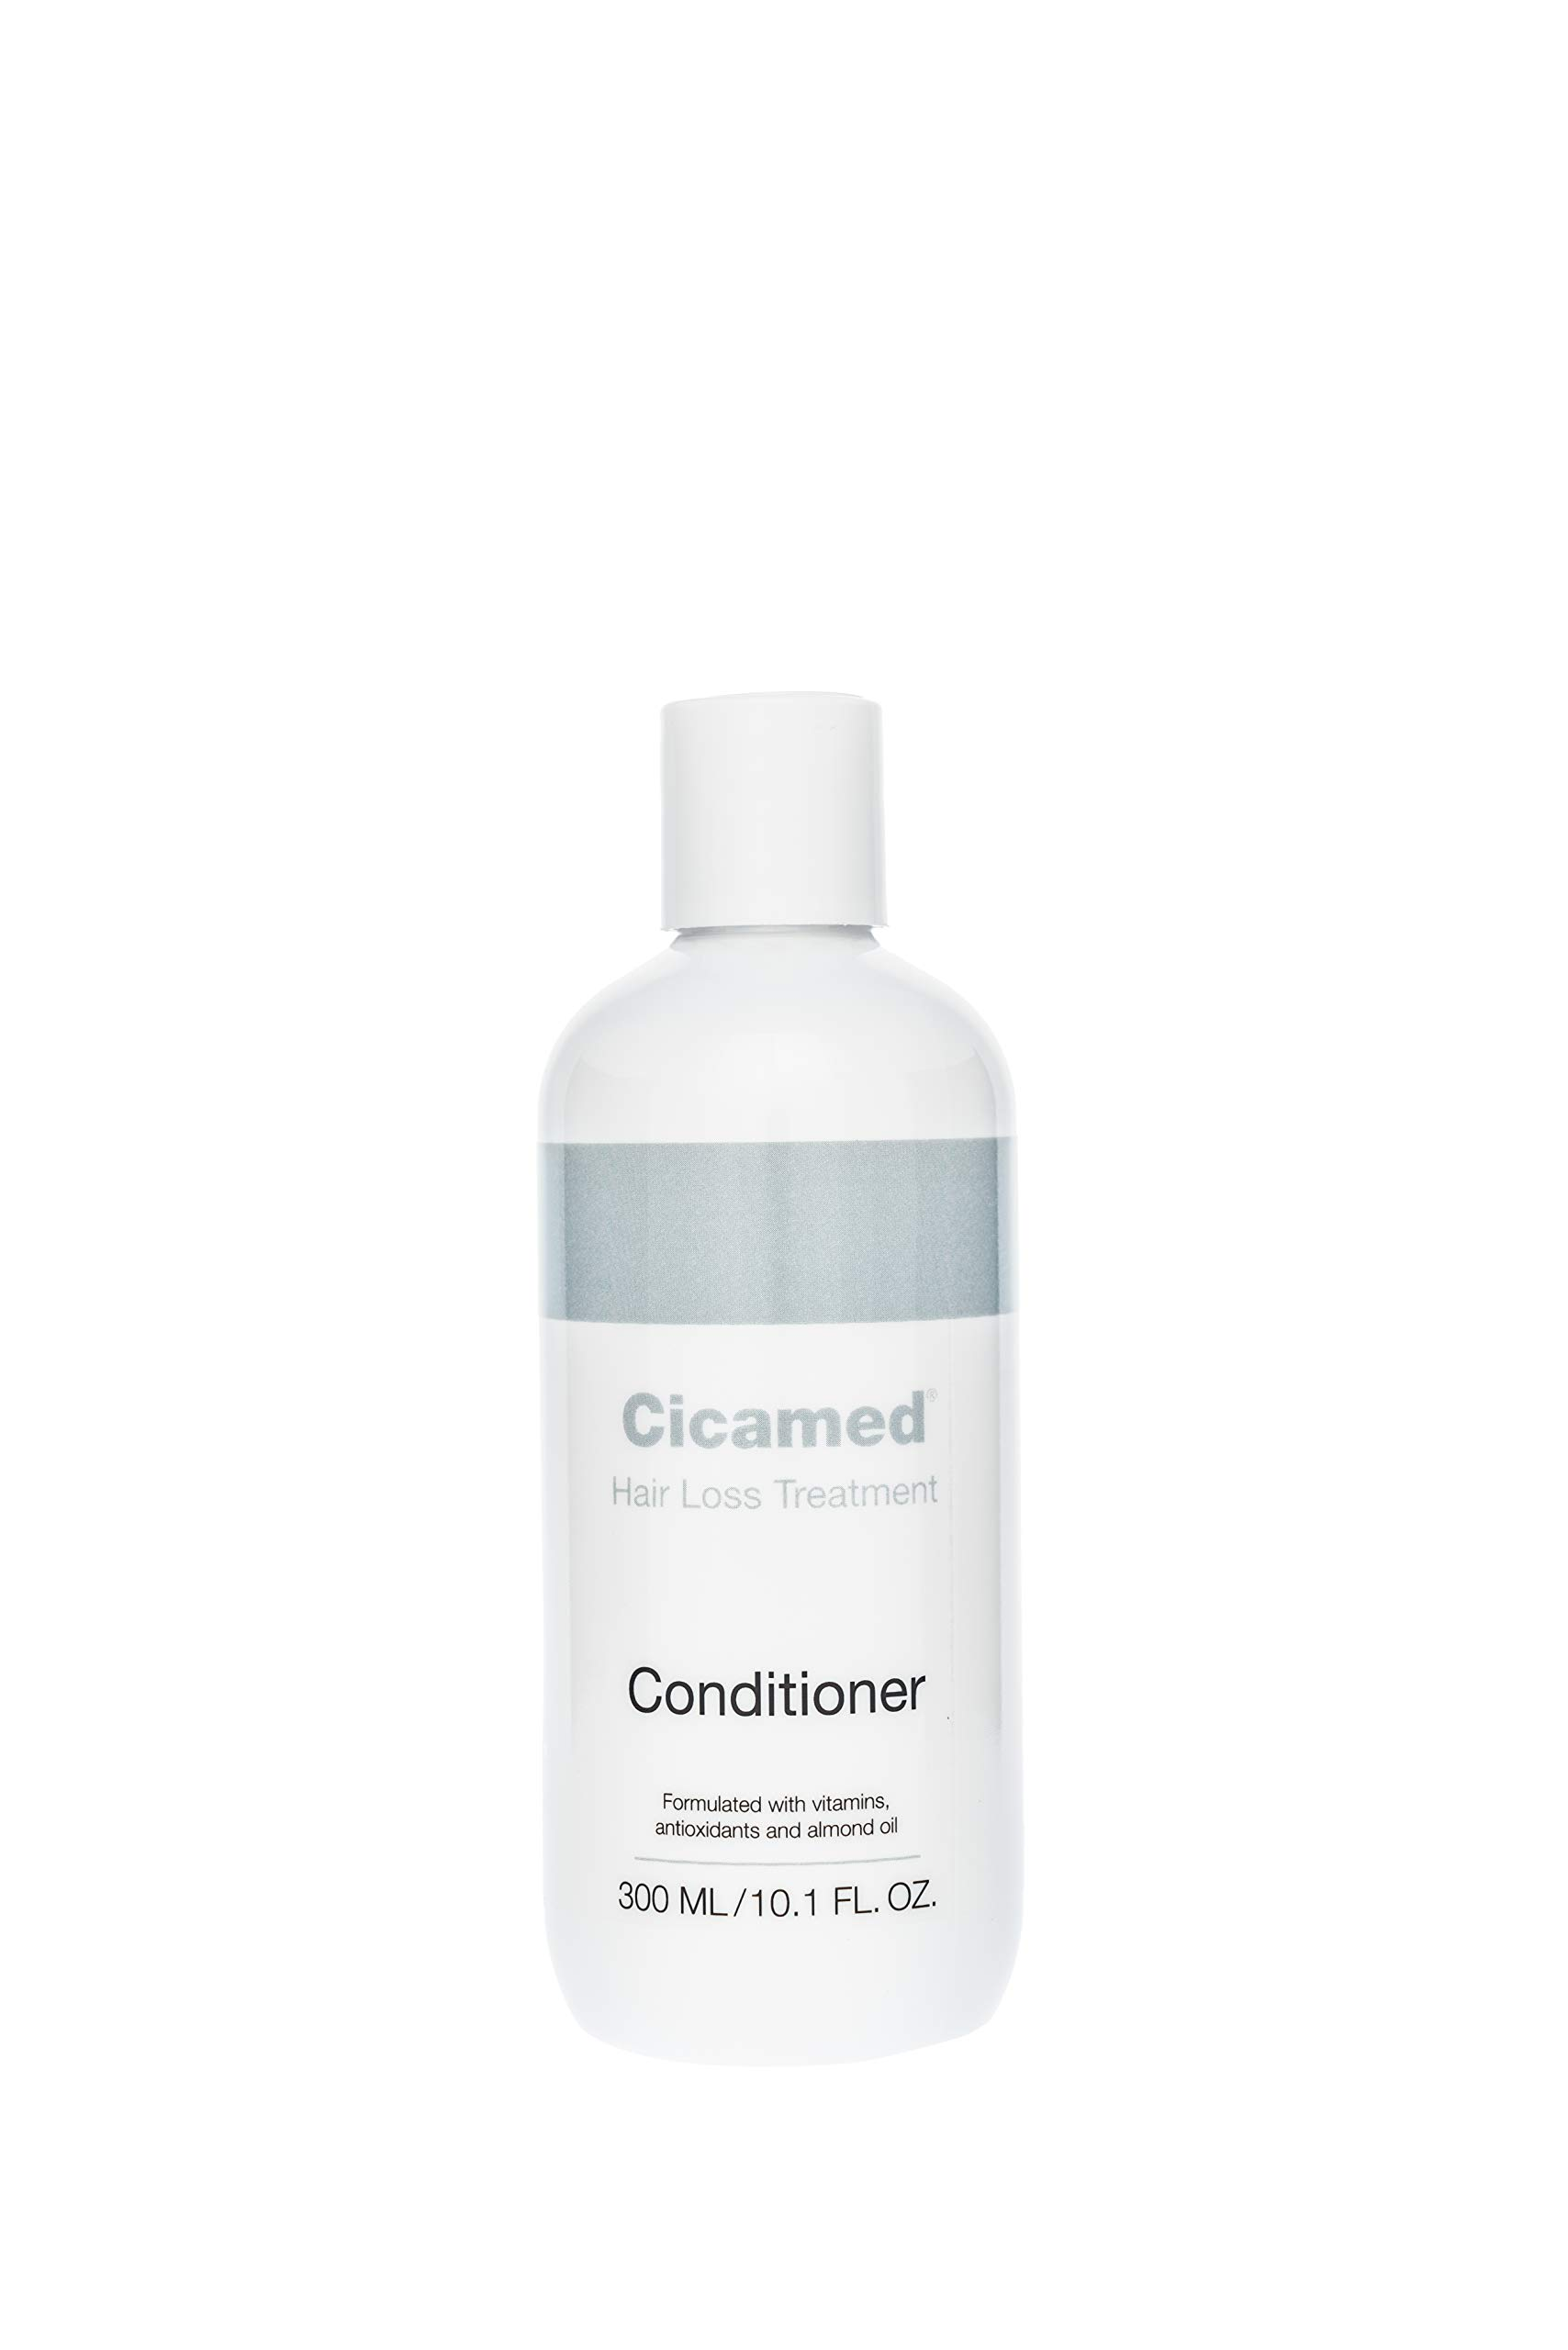 Cicamed Organic Science Hair Loss Treatment Conditioner,White,300 ML/ 10.1 FL. OZ.